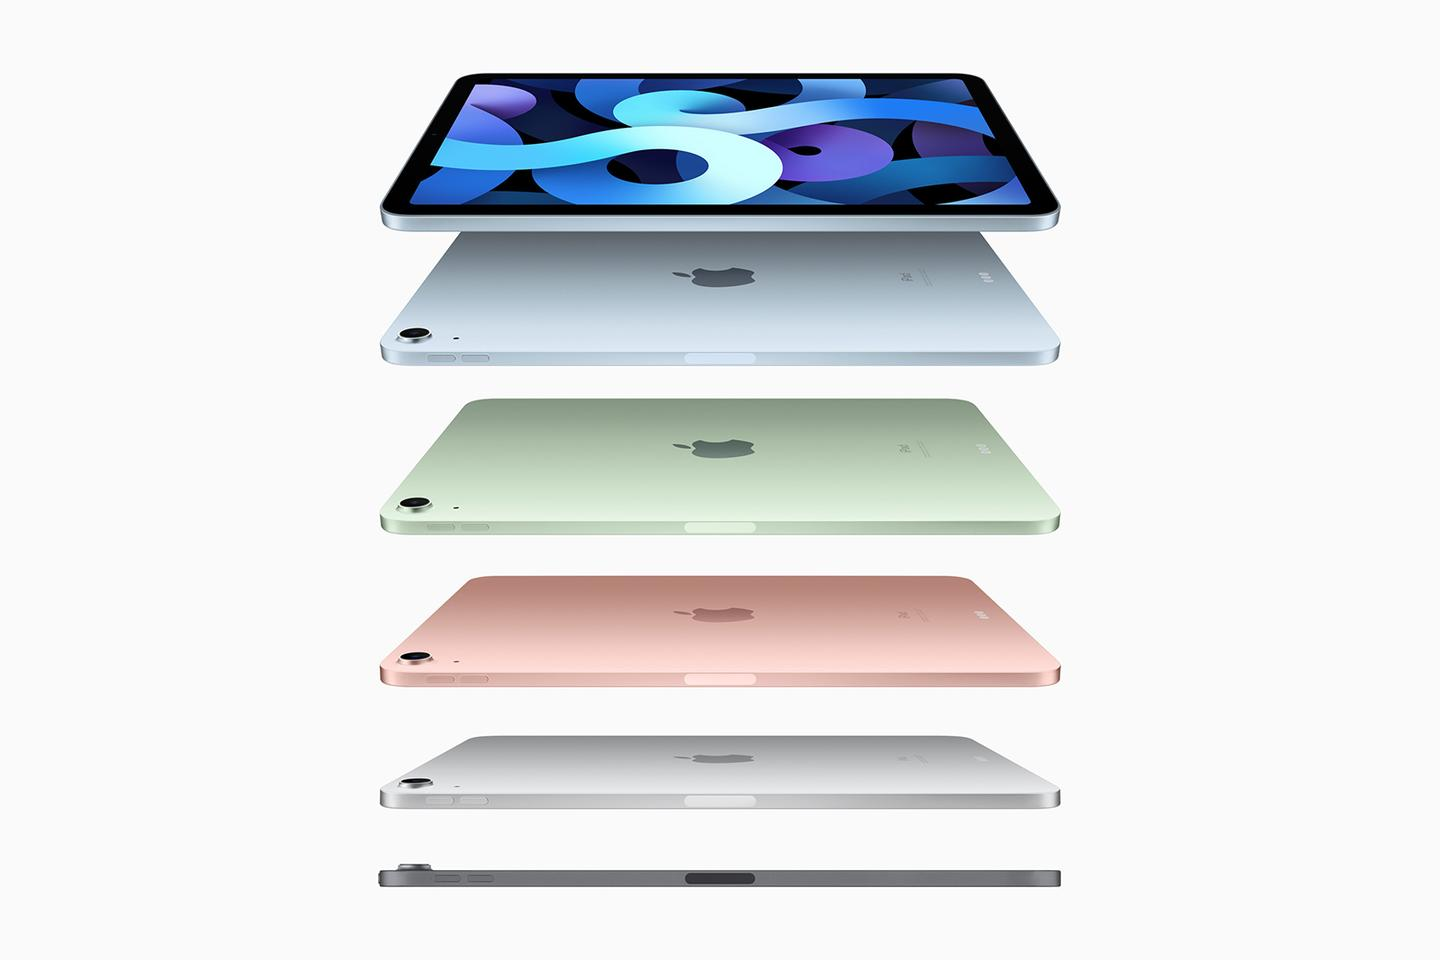 The iPad Air now looks much like the iPad Pro – but it's available in more colors